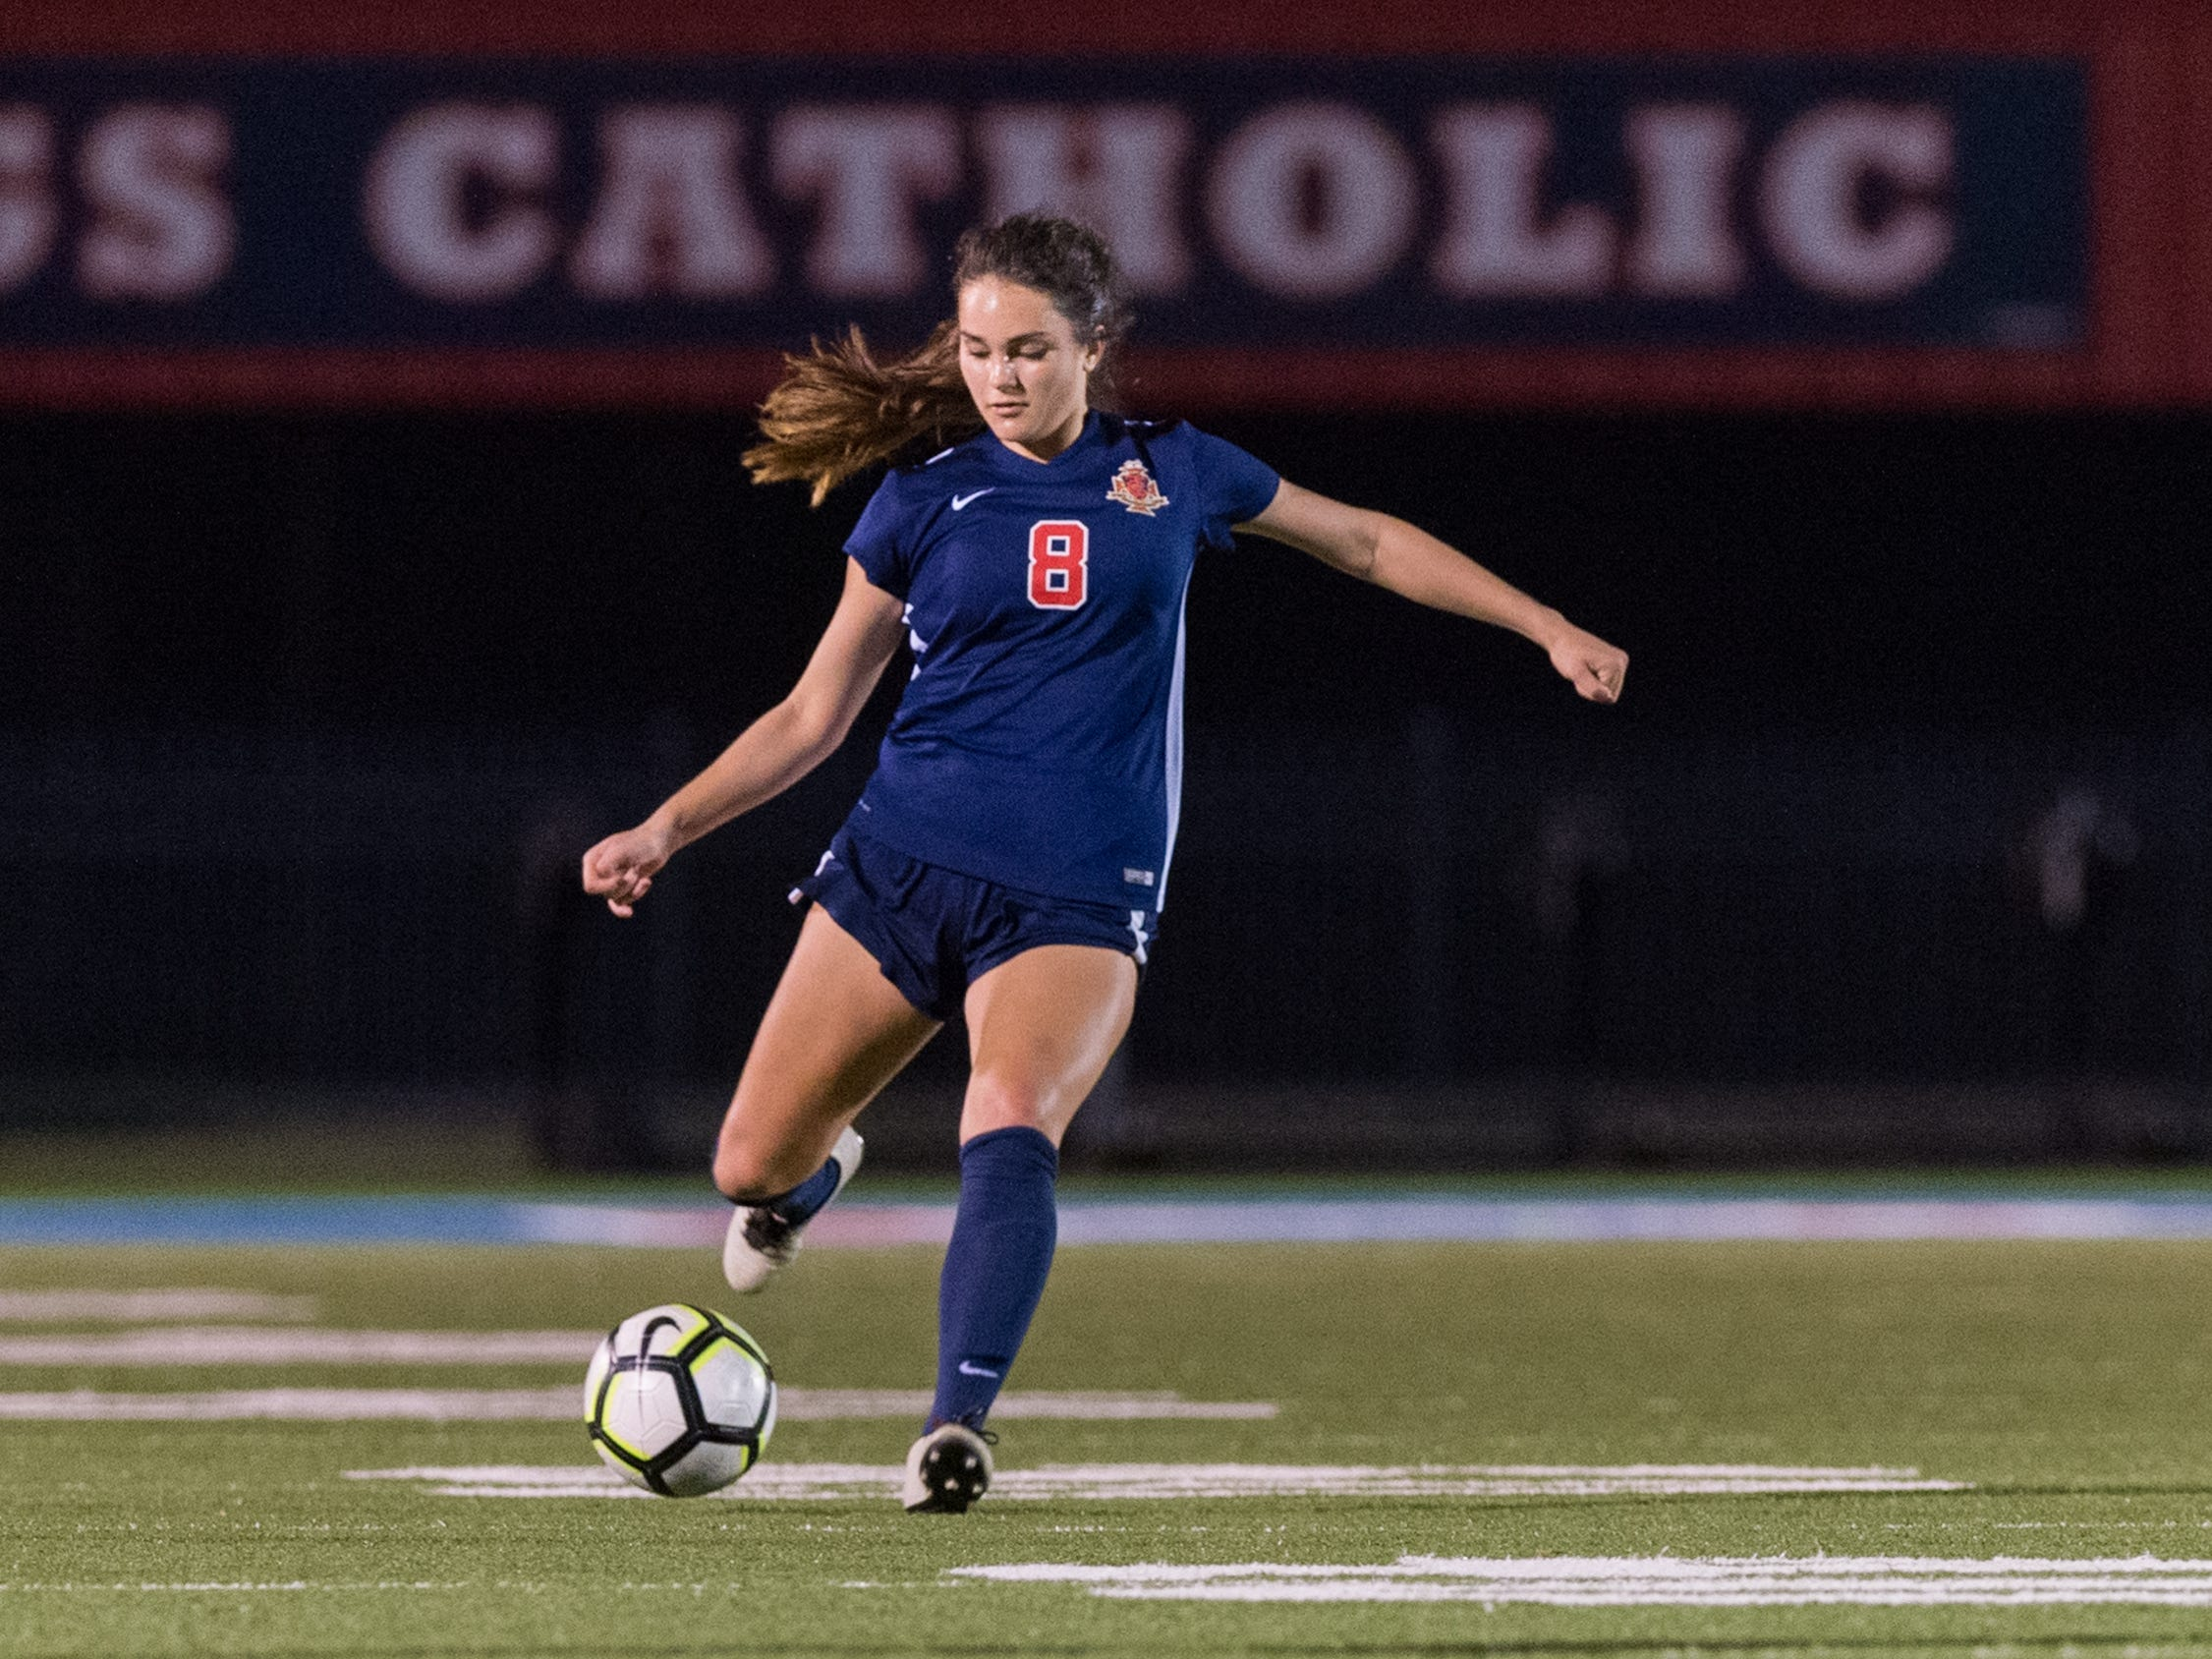 Kaitlyn Poirrier drives the ball as Teurlings Catholic girls soccer takes down Holy Savior Menard in the quarterfinals of the LHSAA soccer playoffs. Monday, Feb. 11, 2019.